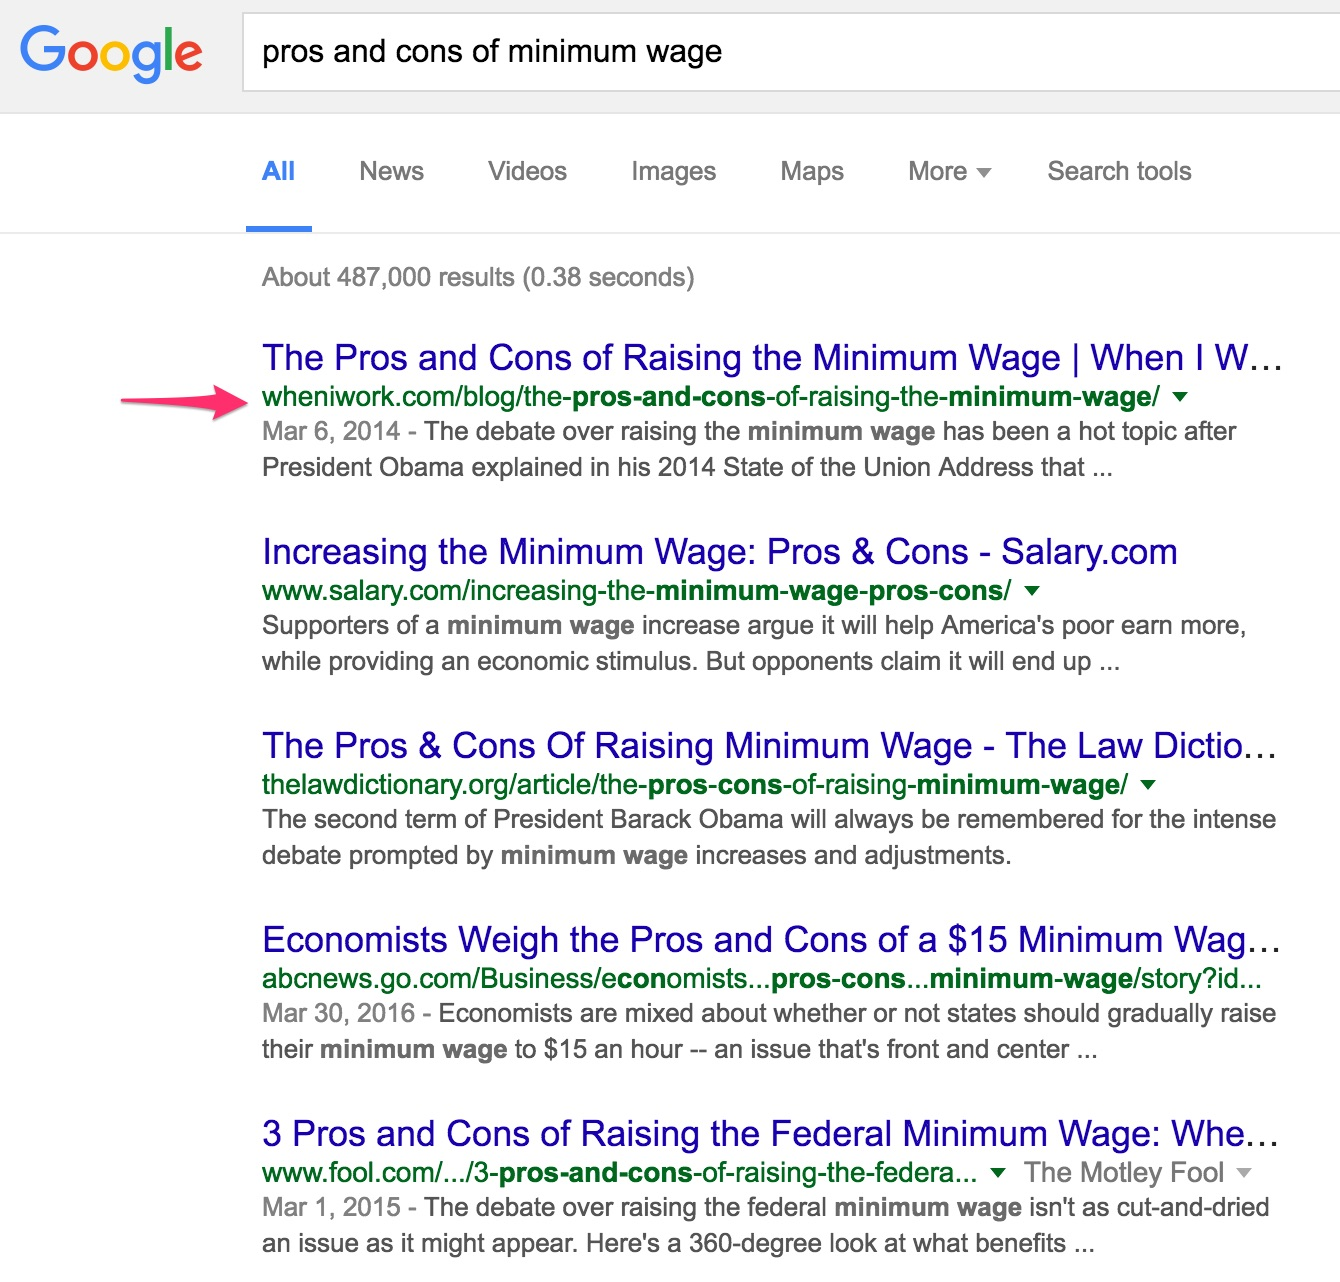 pros_and_cons_of_minimum_wage_-_Google_Search